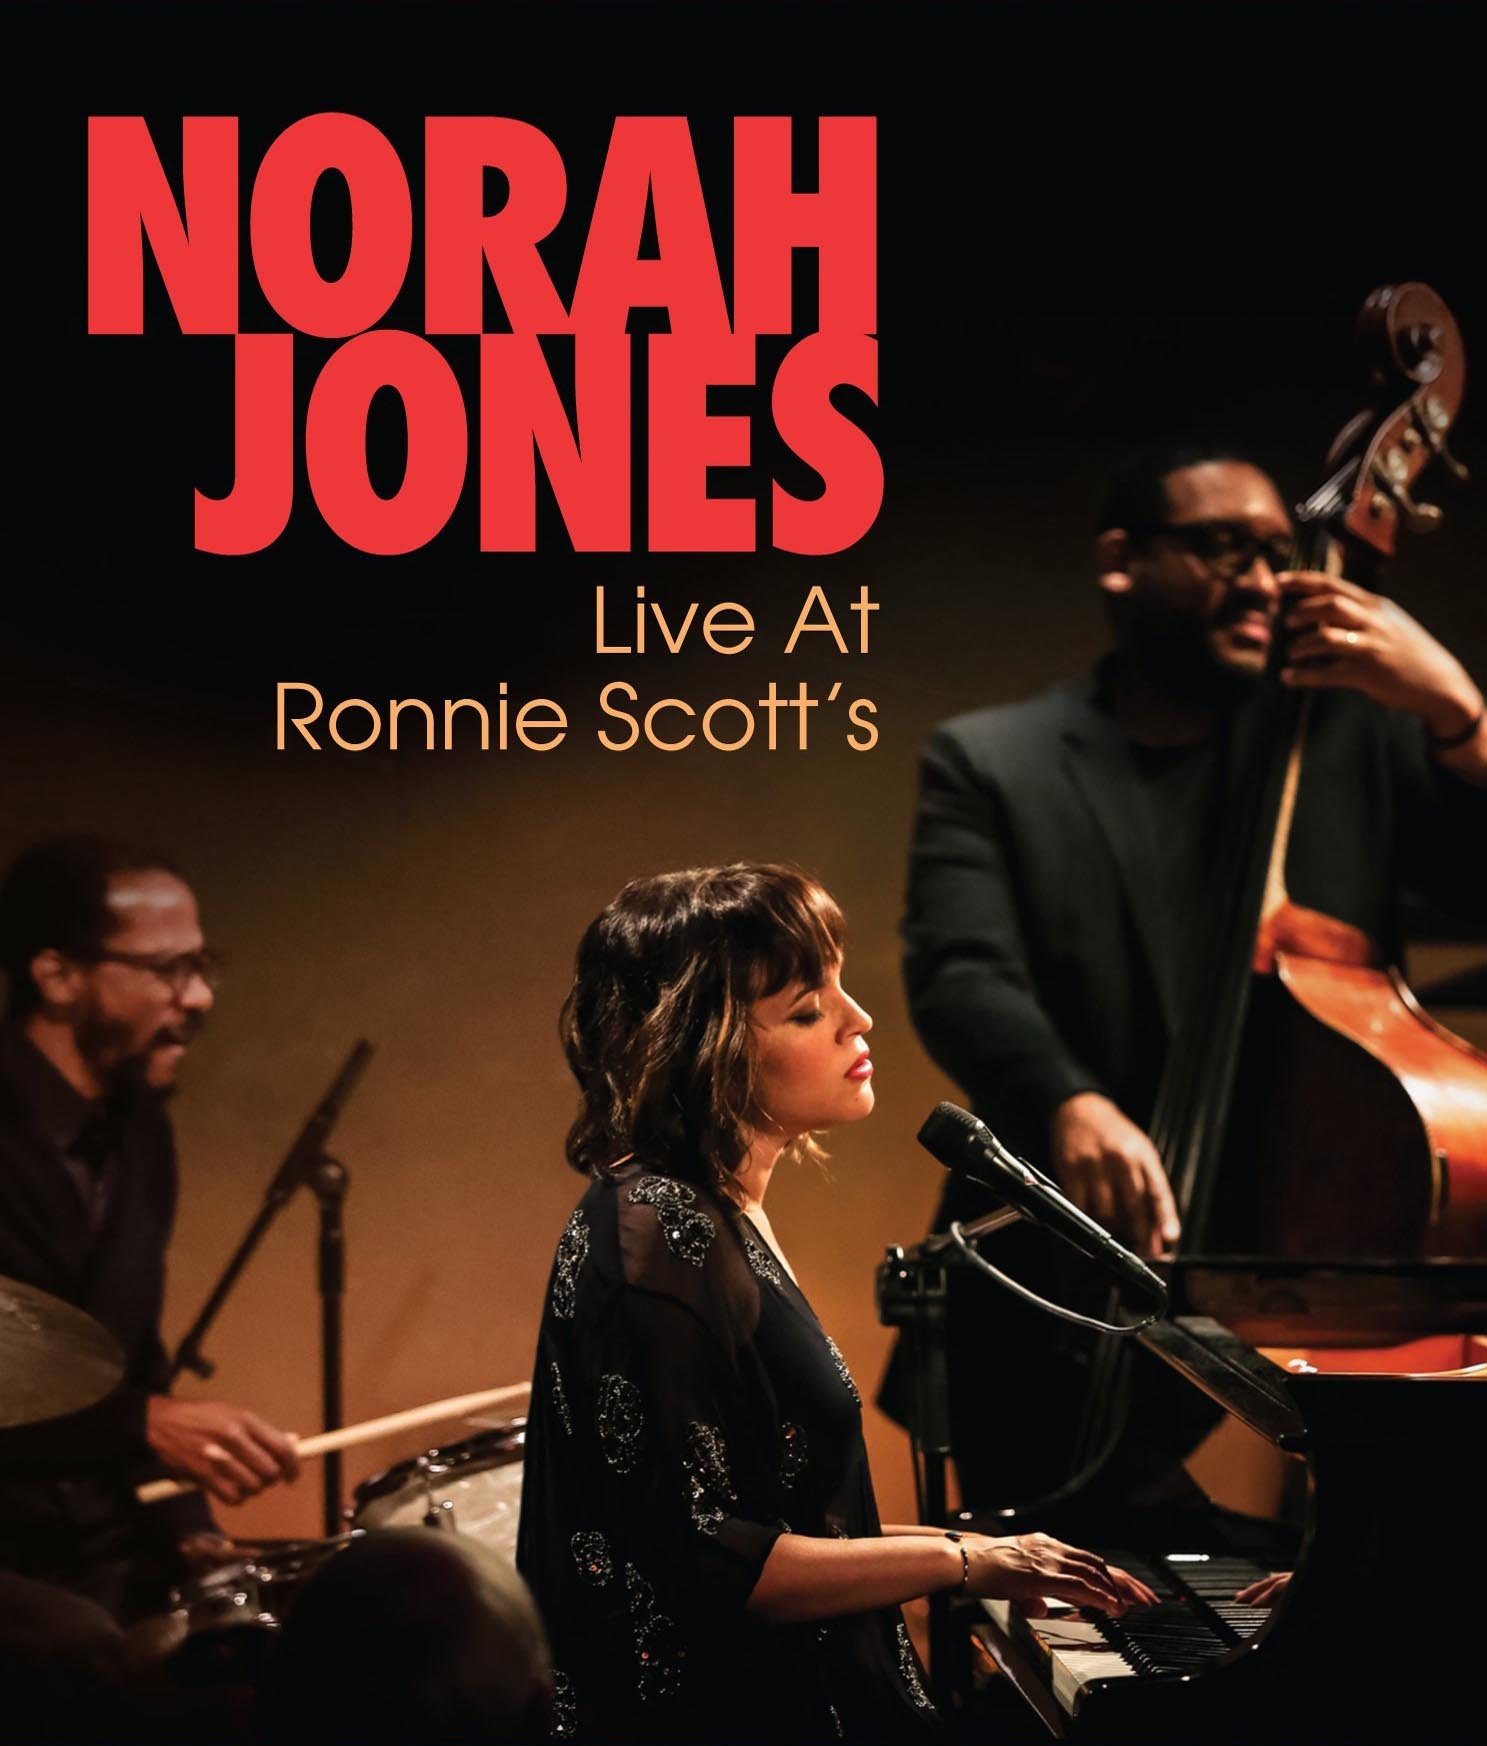 Norah Jones Live at Ronnie Scotts